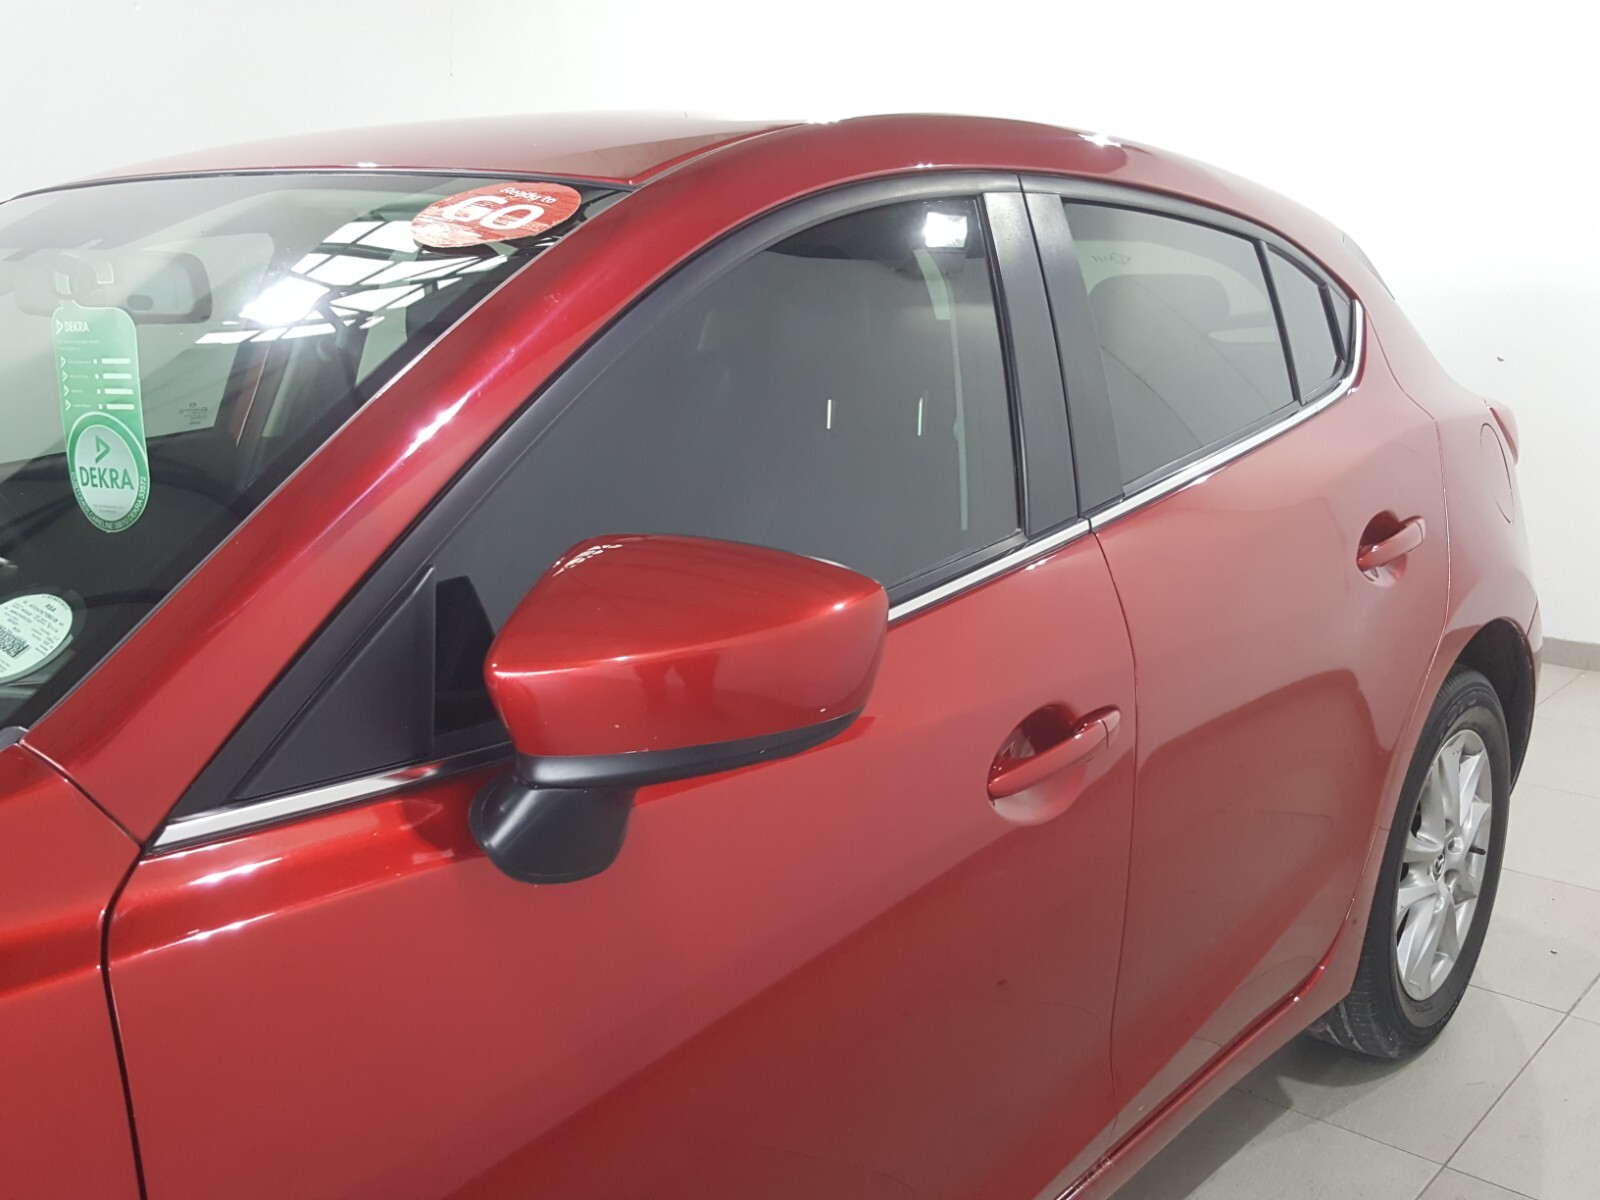 MAZDA 1.6 DYNAMIC 5DR A/T Roodepoort 4327025